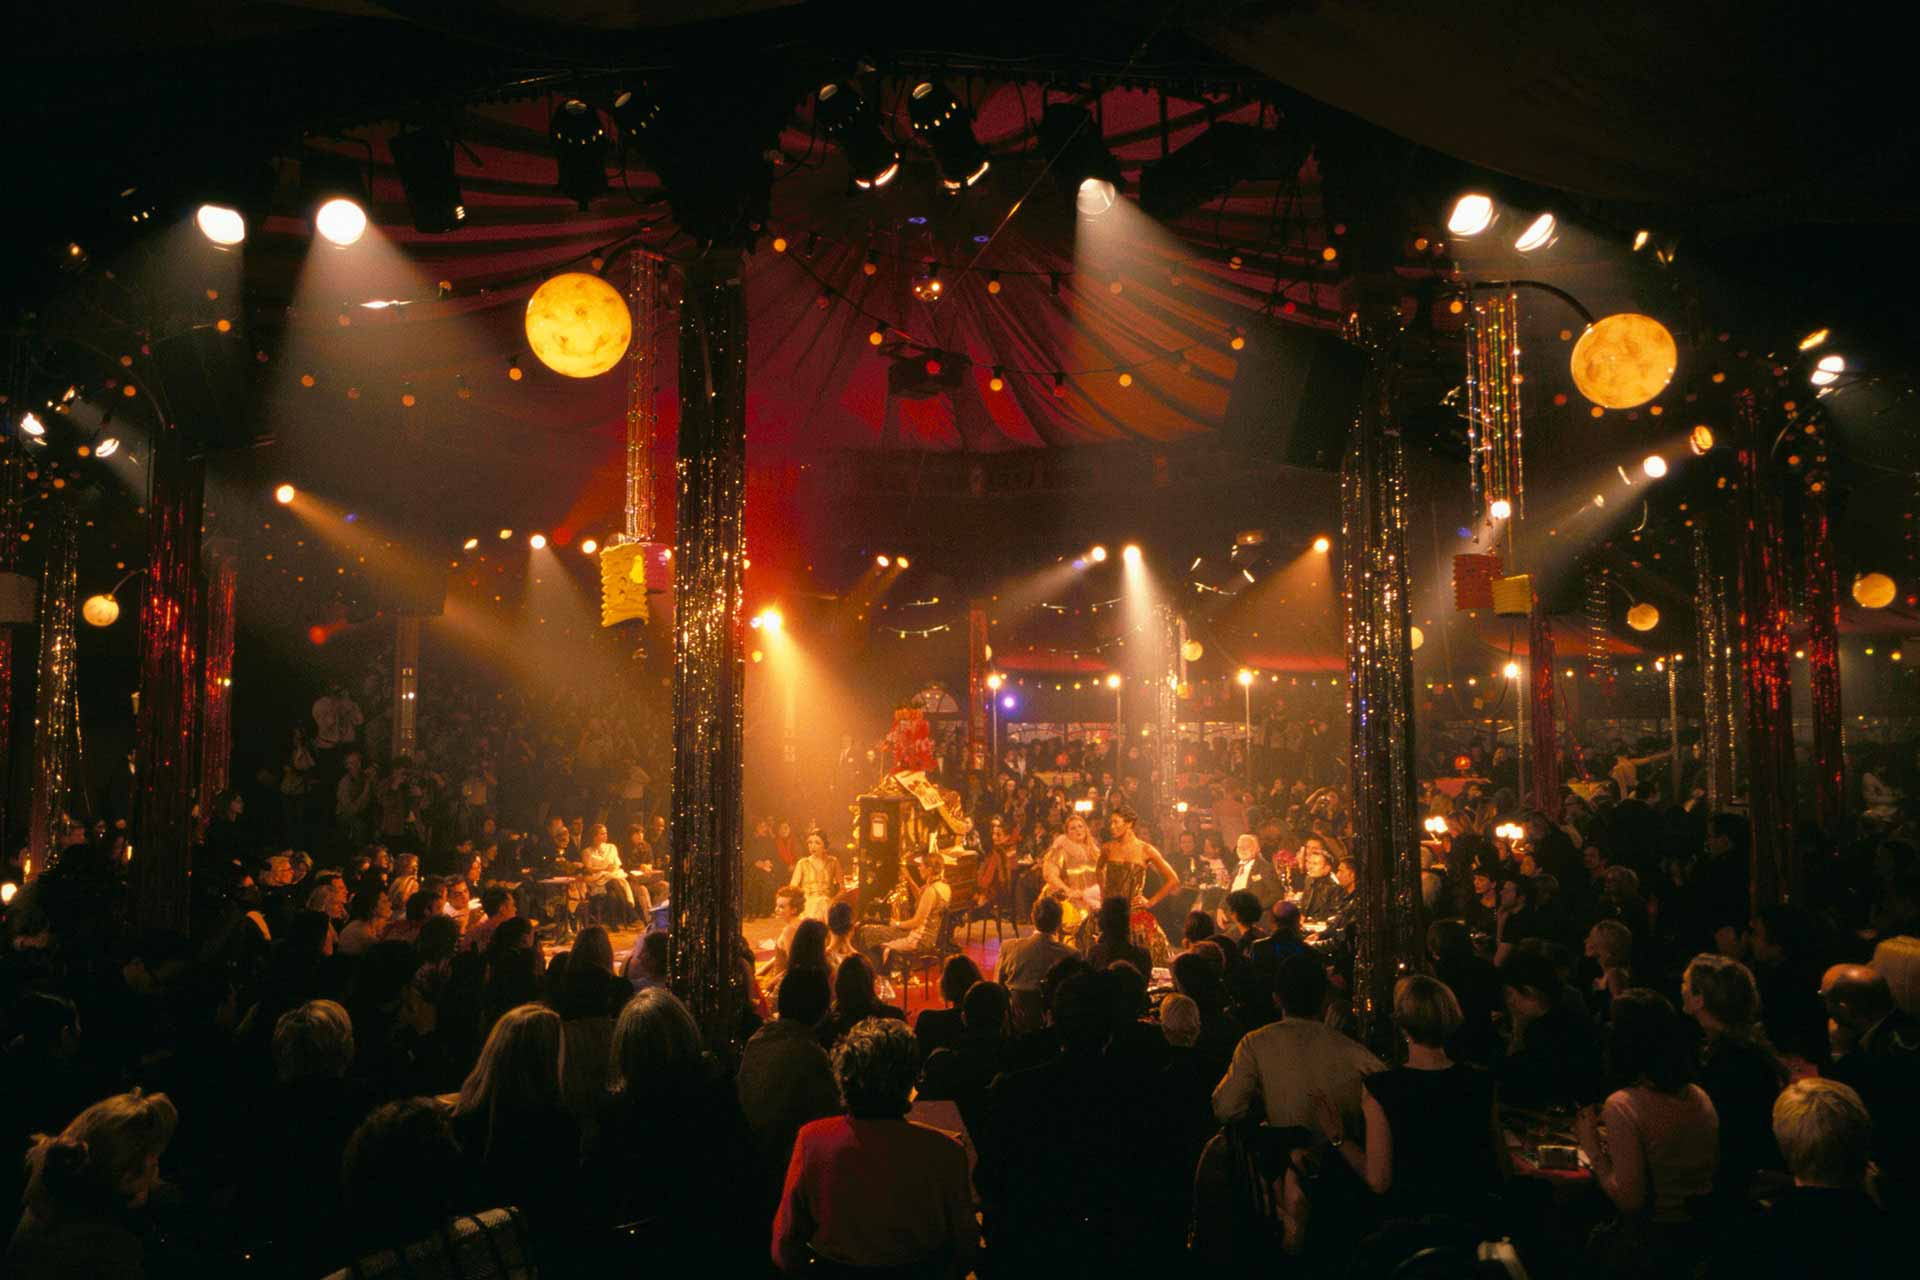 Performance spiegeltent Salon Perdu